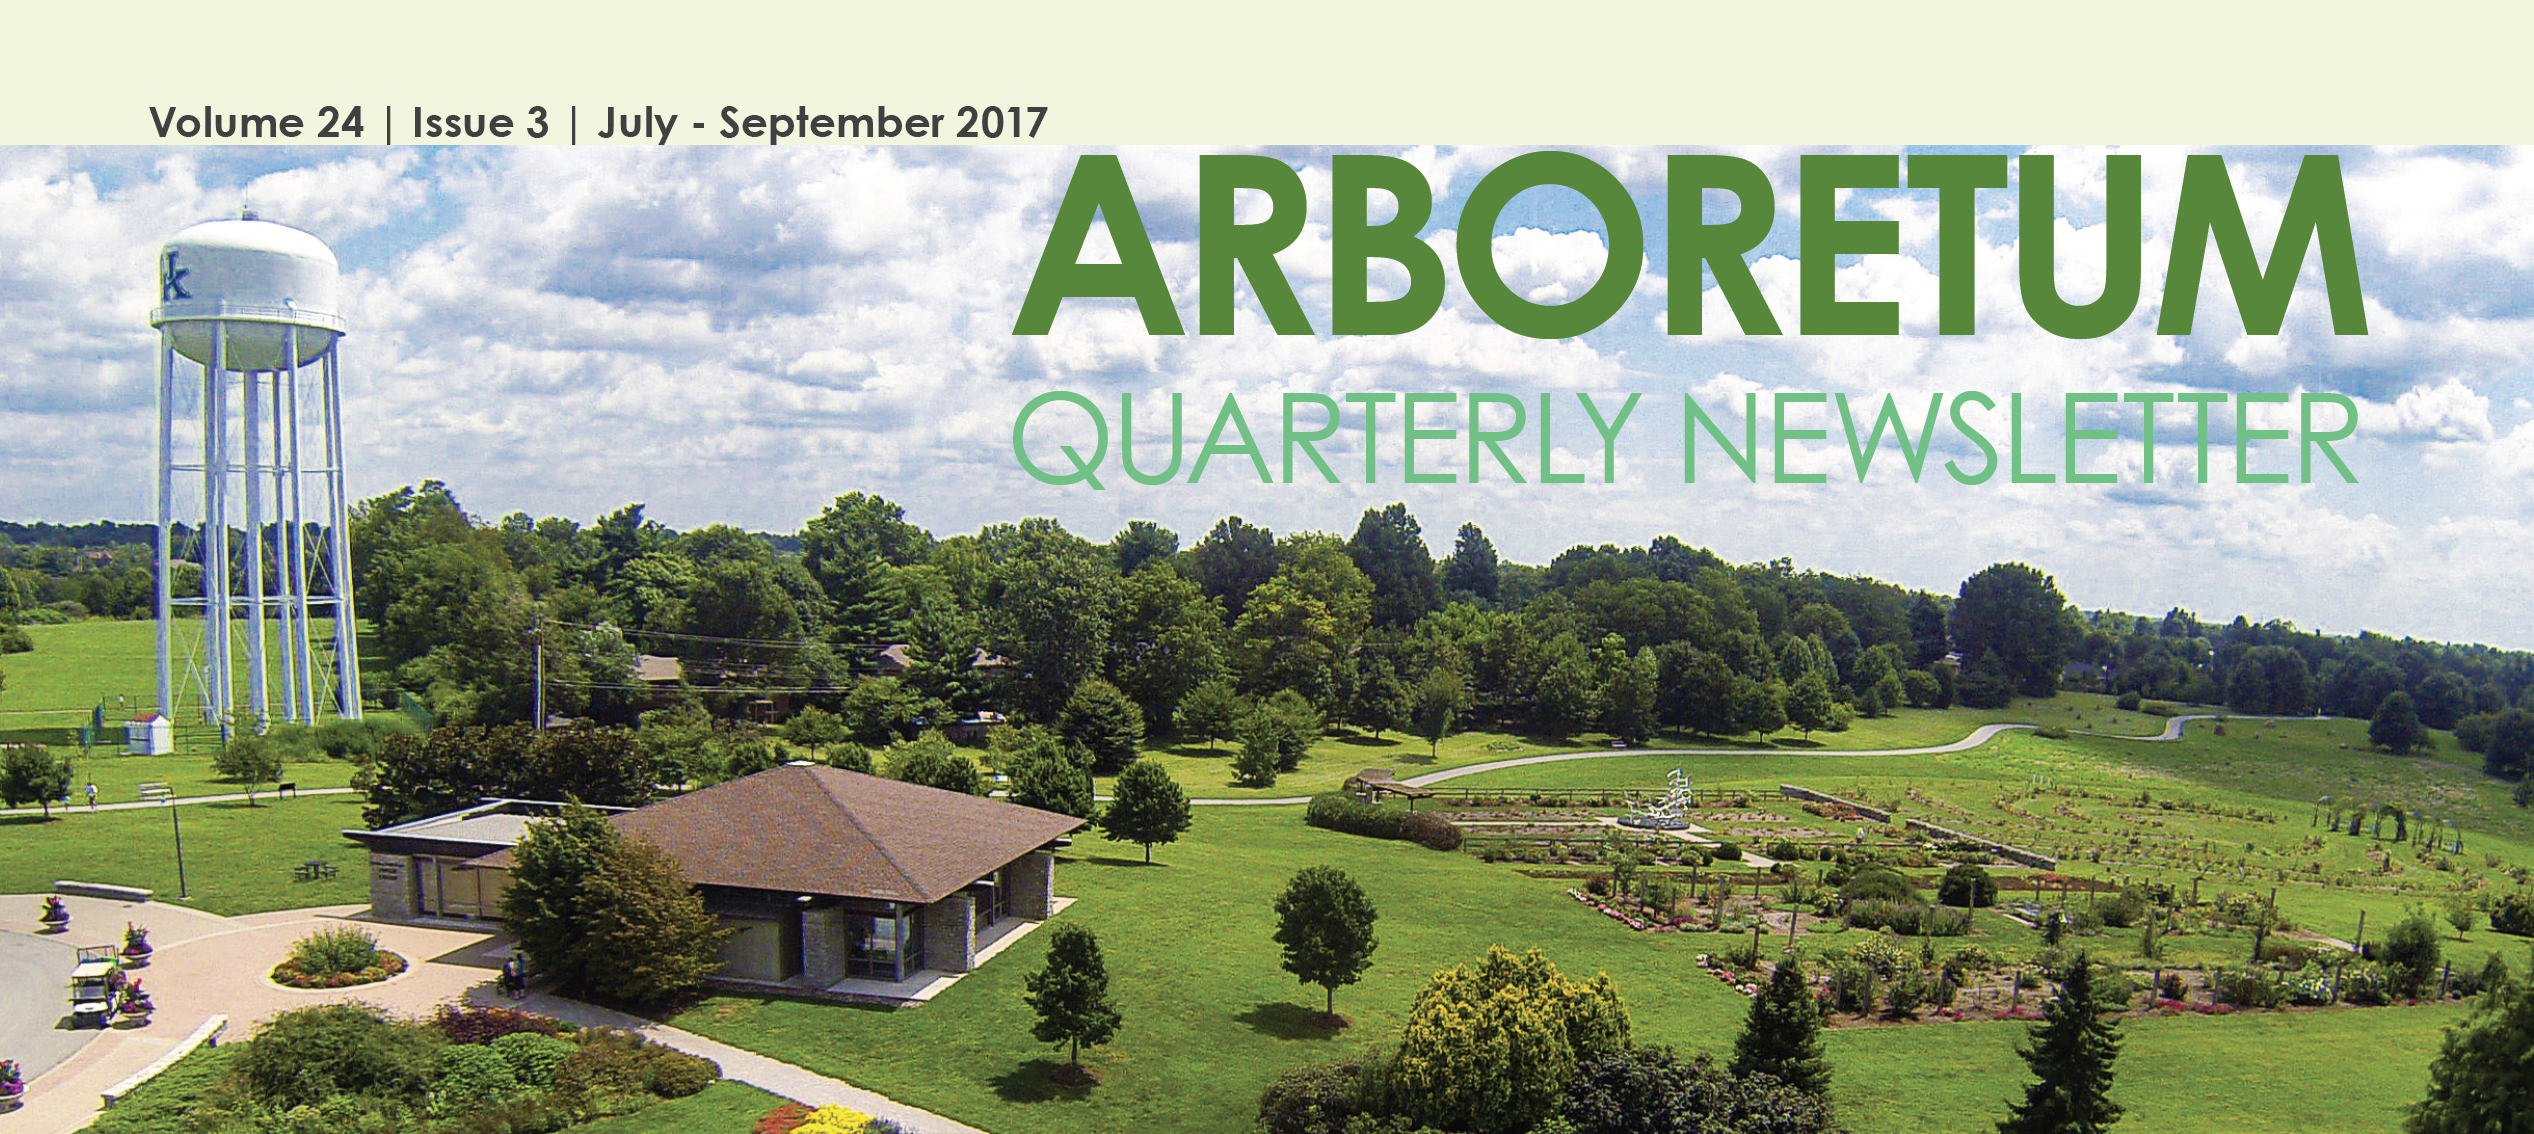 UK Arboretum July September 2017 Newsletter Cover Image